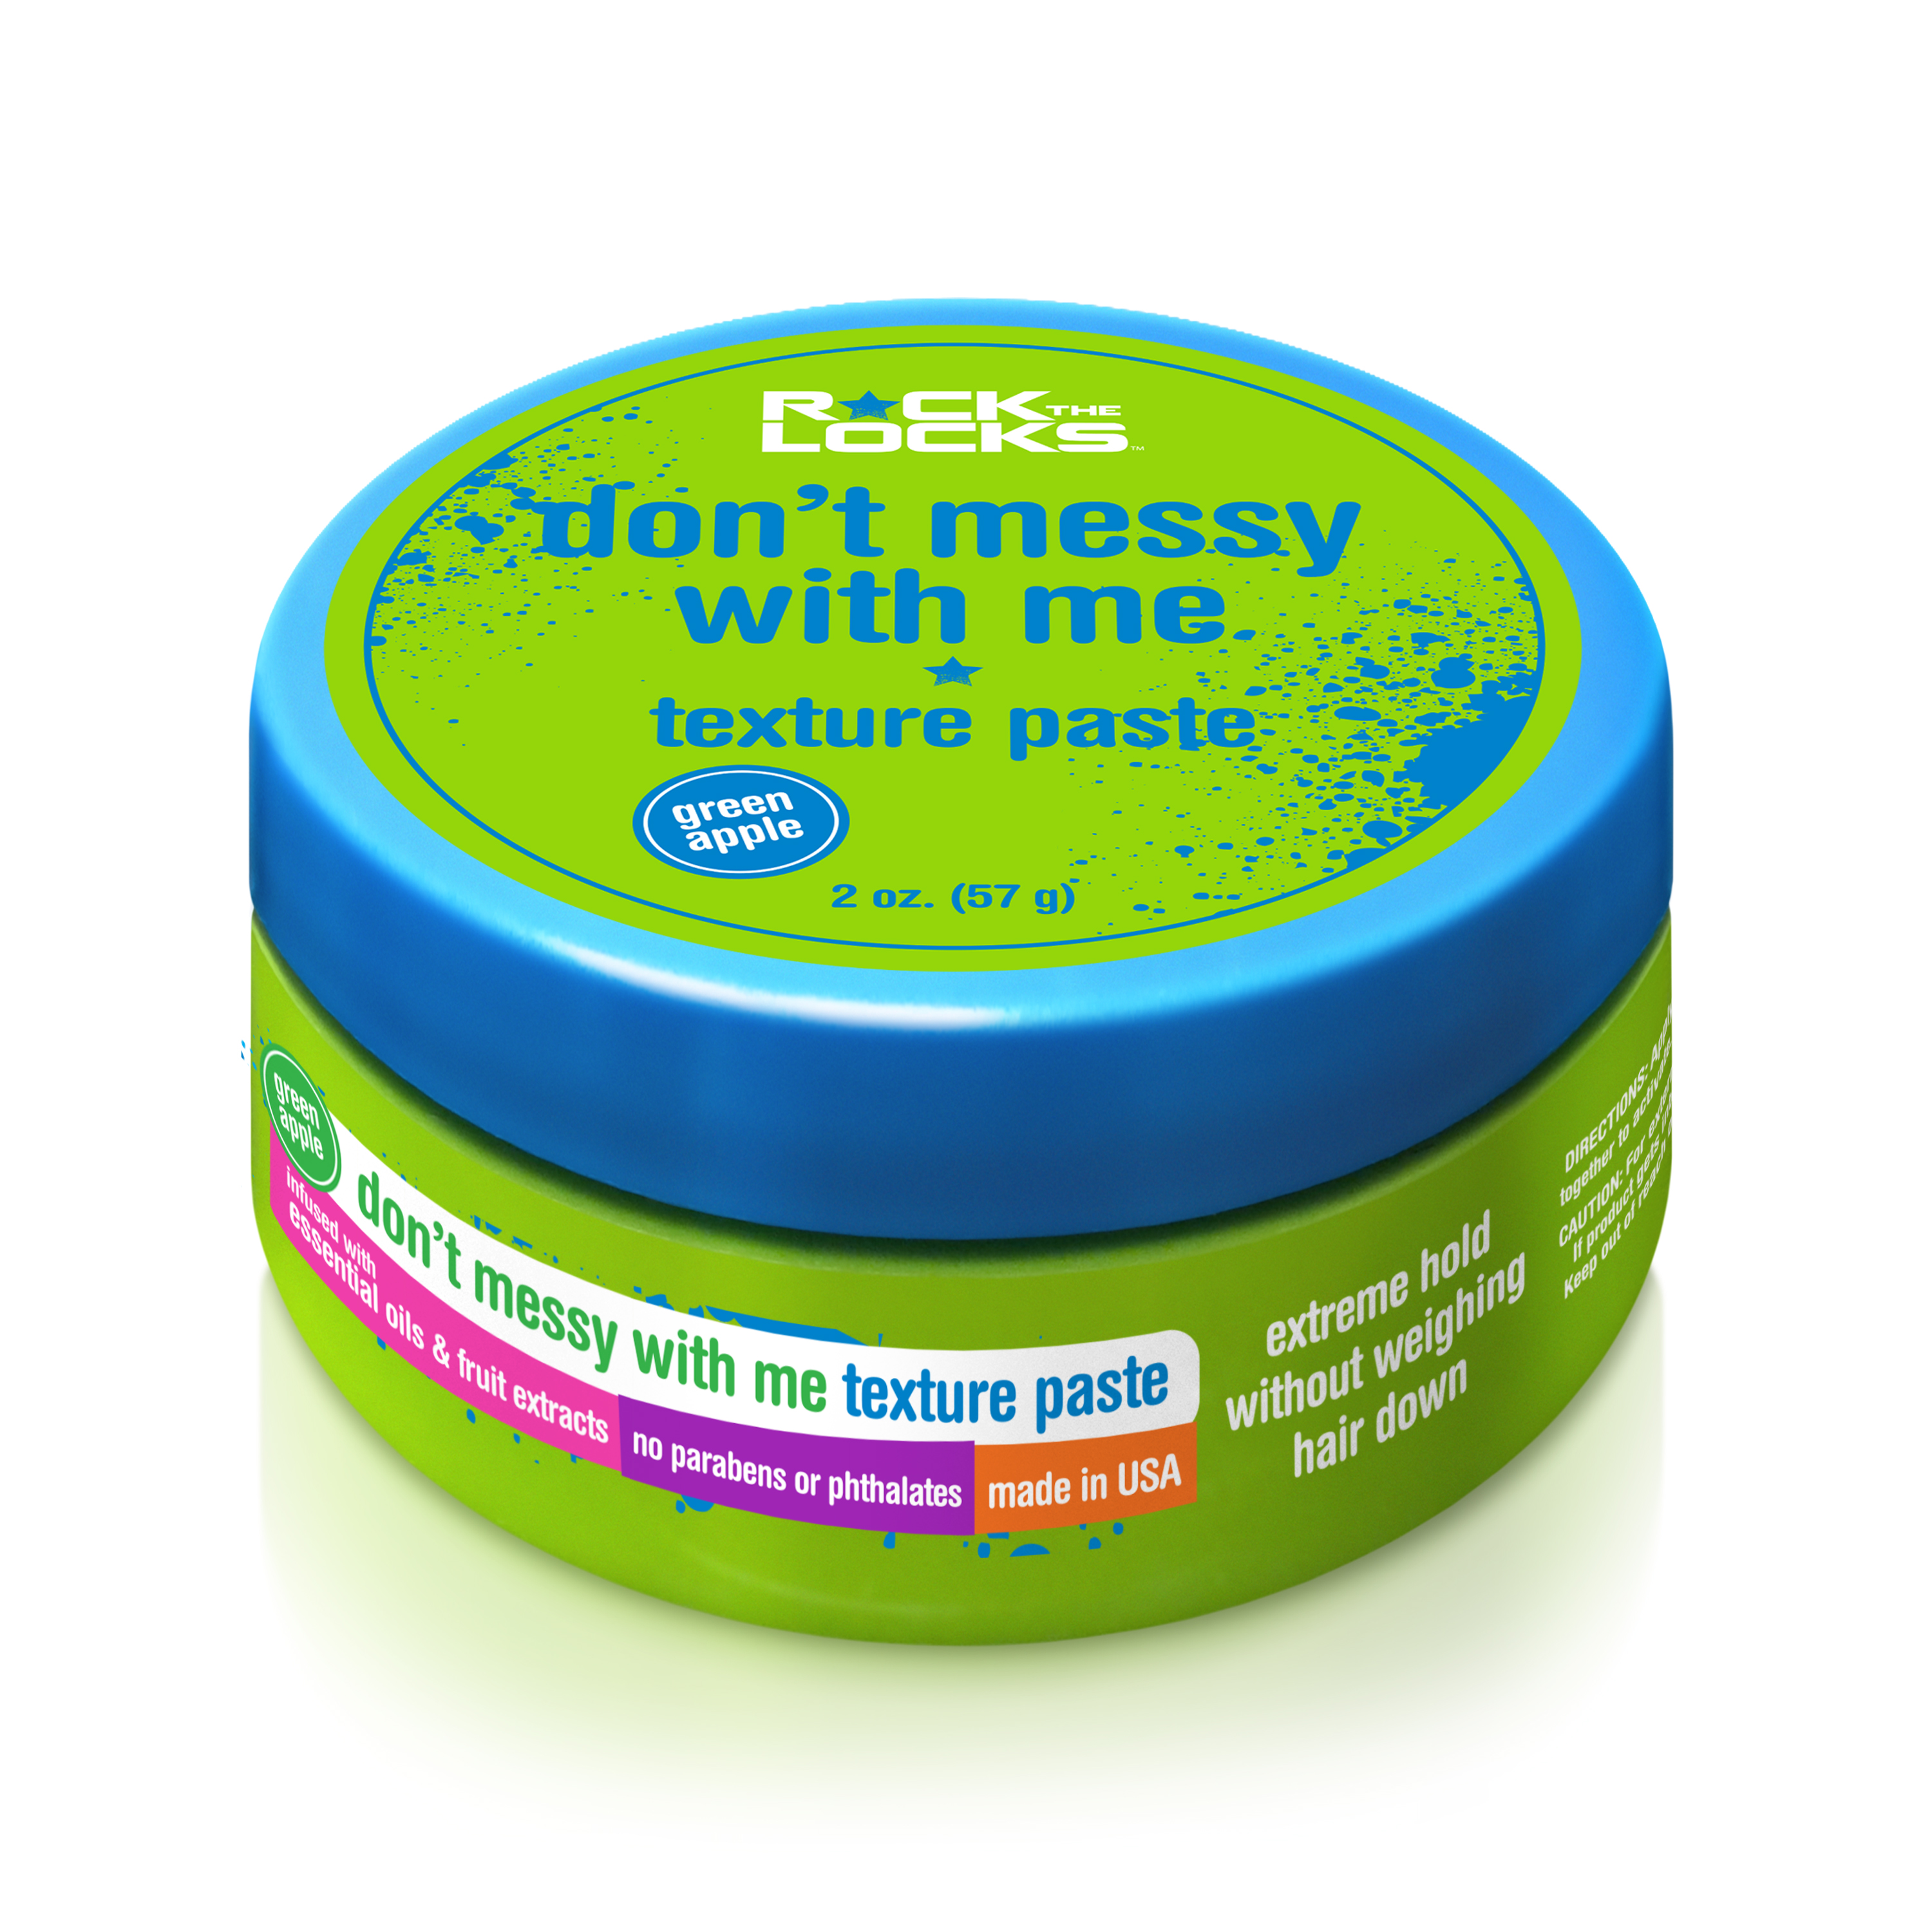 (2 Pack) Rock the Locks Don Messy with Me Texture Paste, Green Apple, 2 Oz